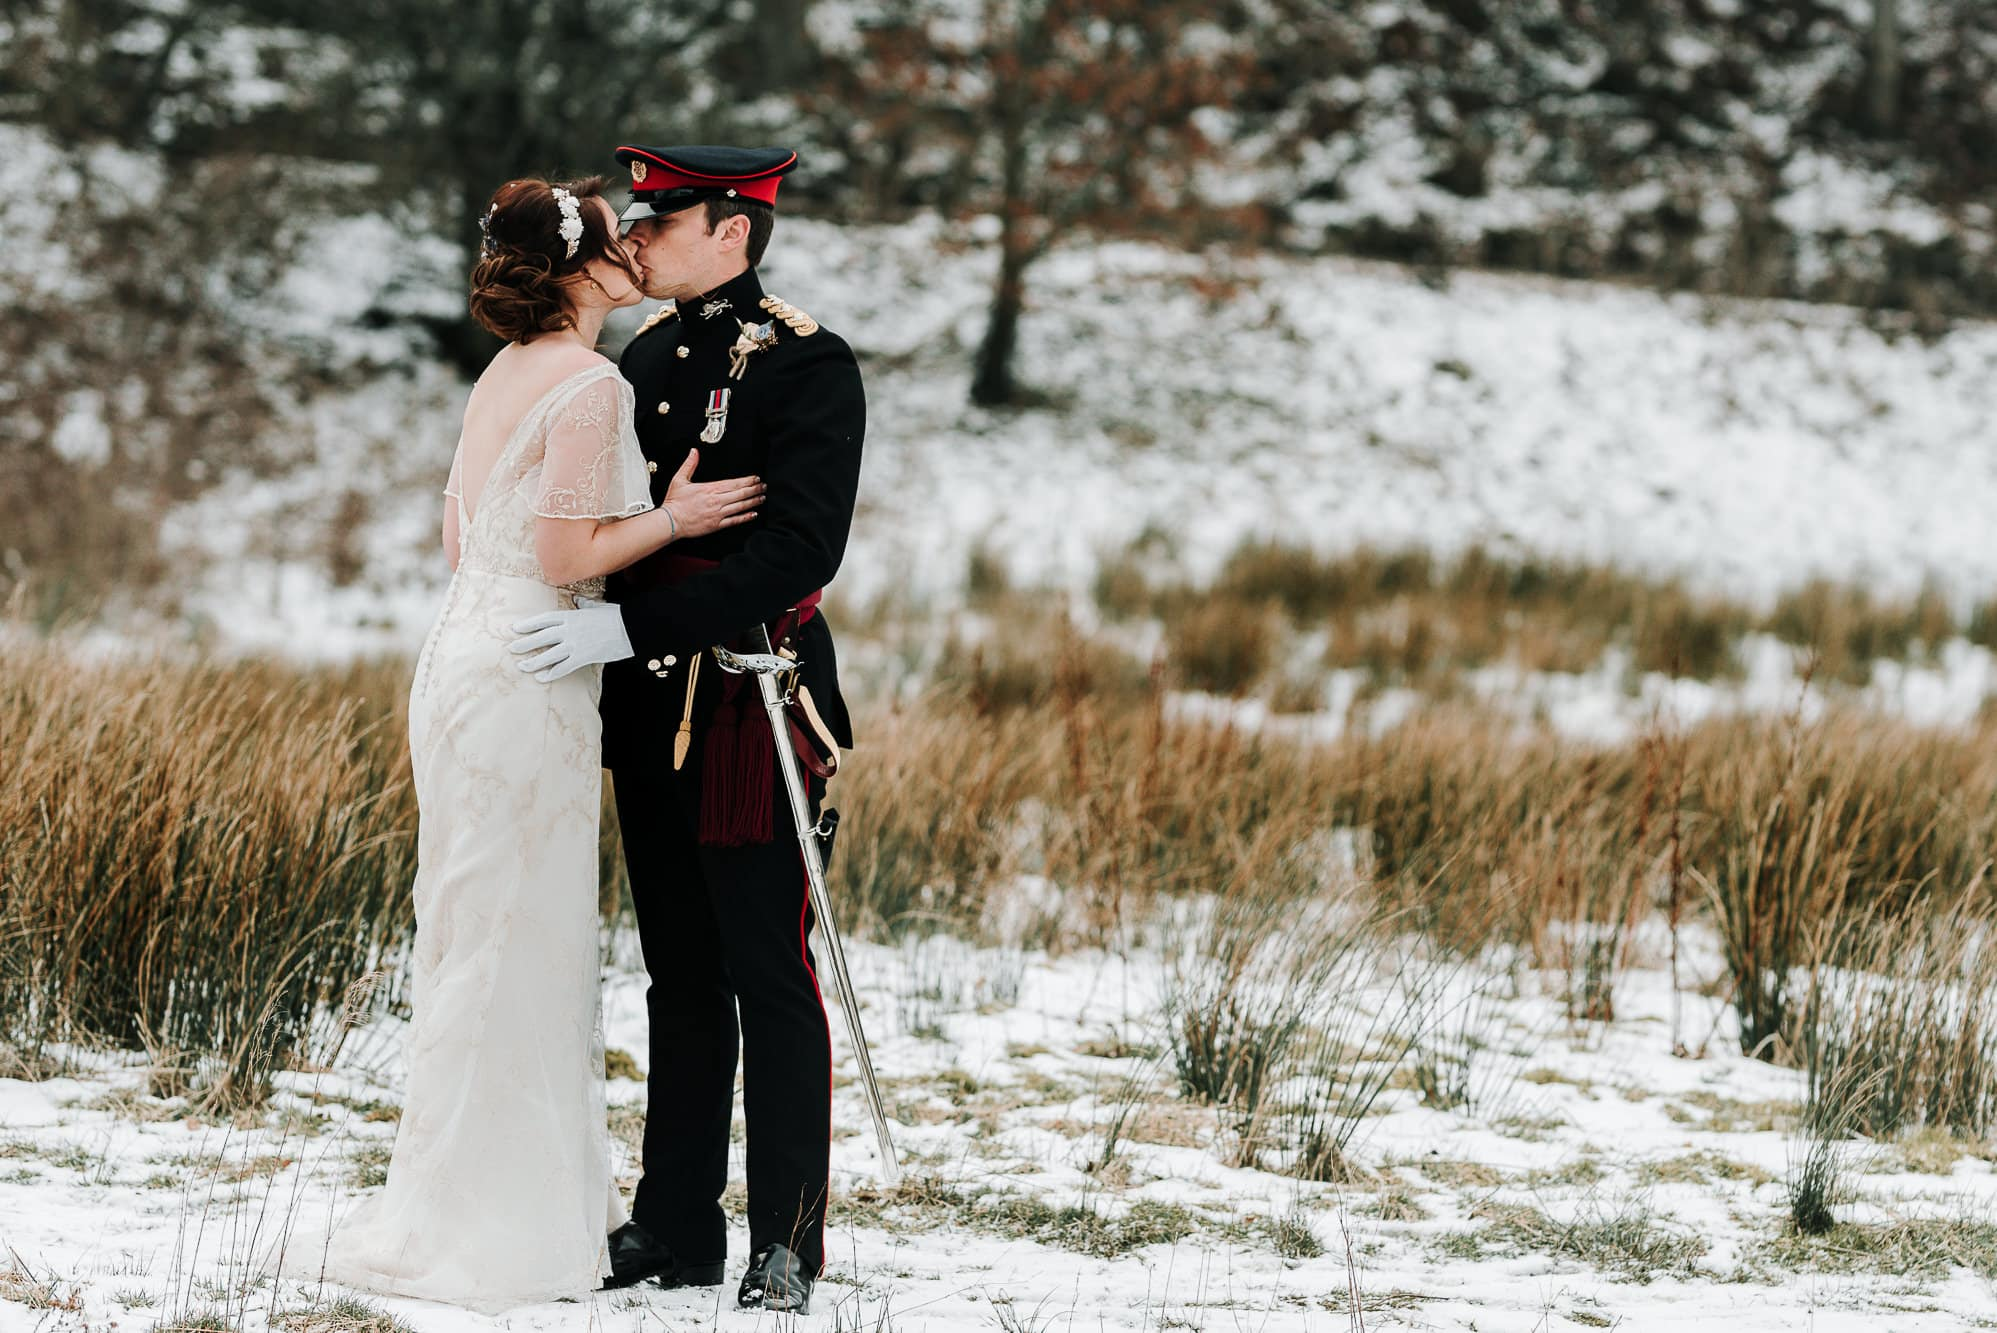 The newly weds kissing in the snow